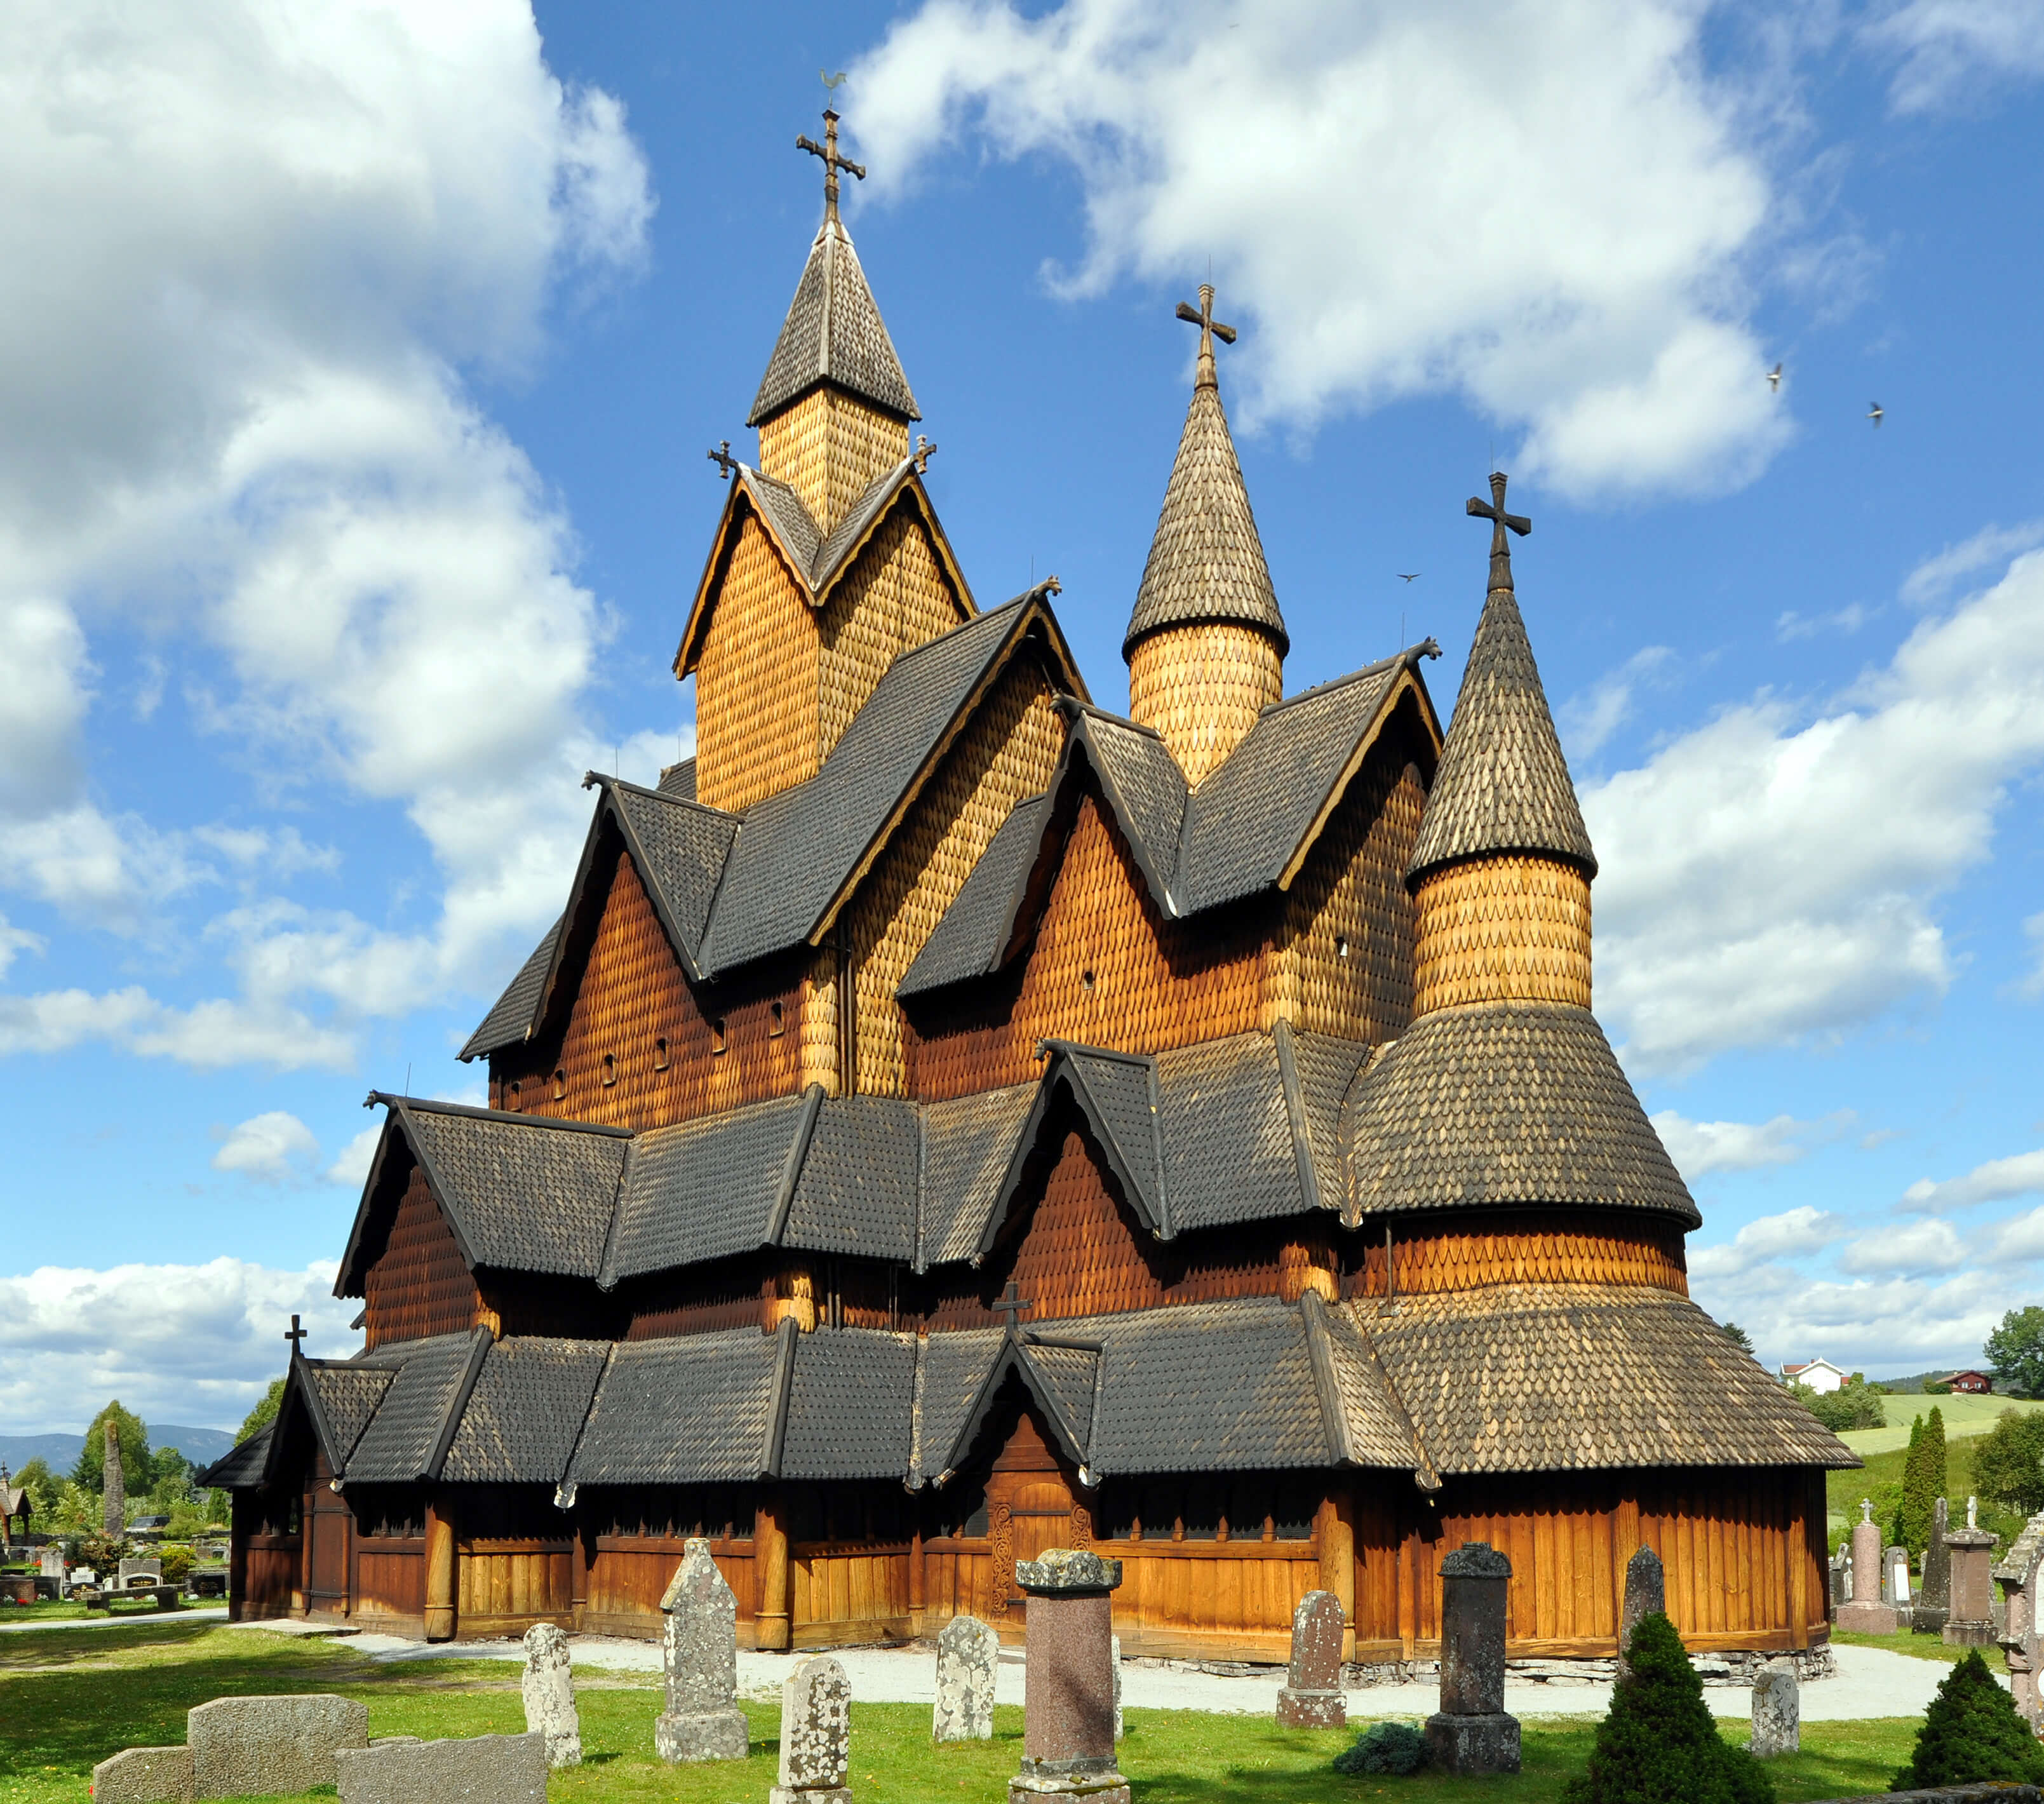 800 year old stave church 3 (1)